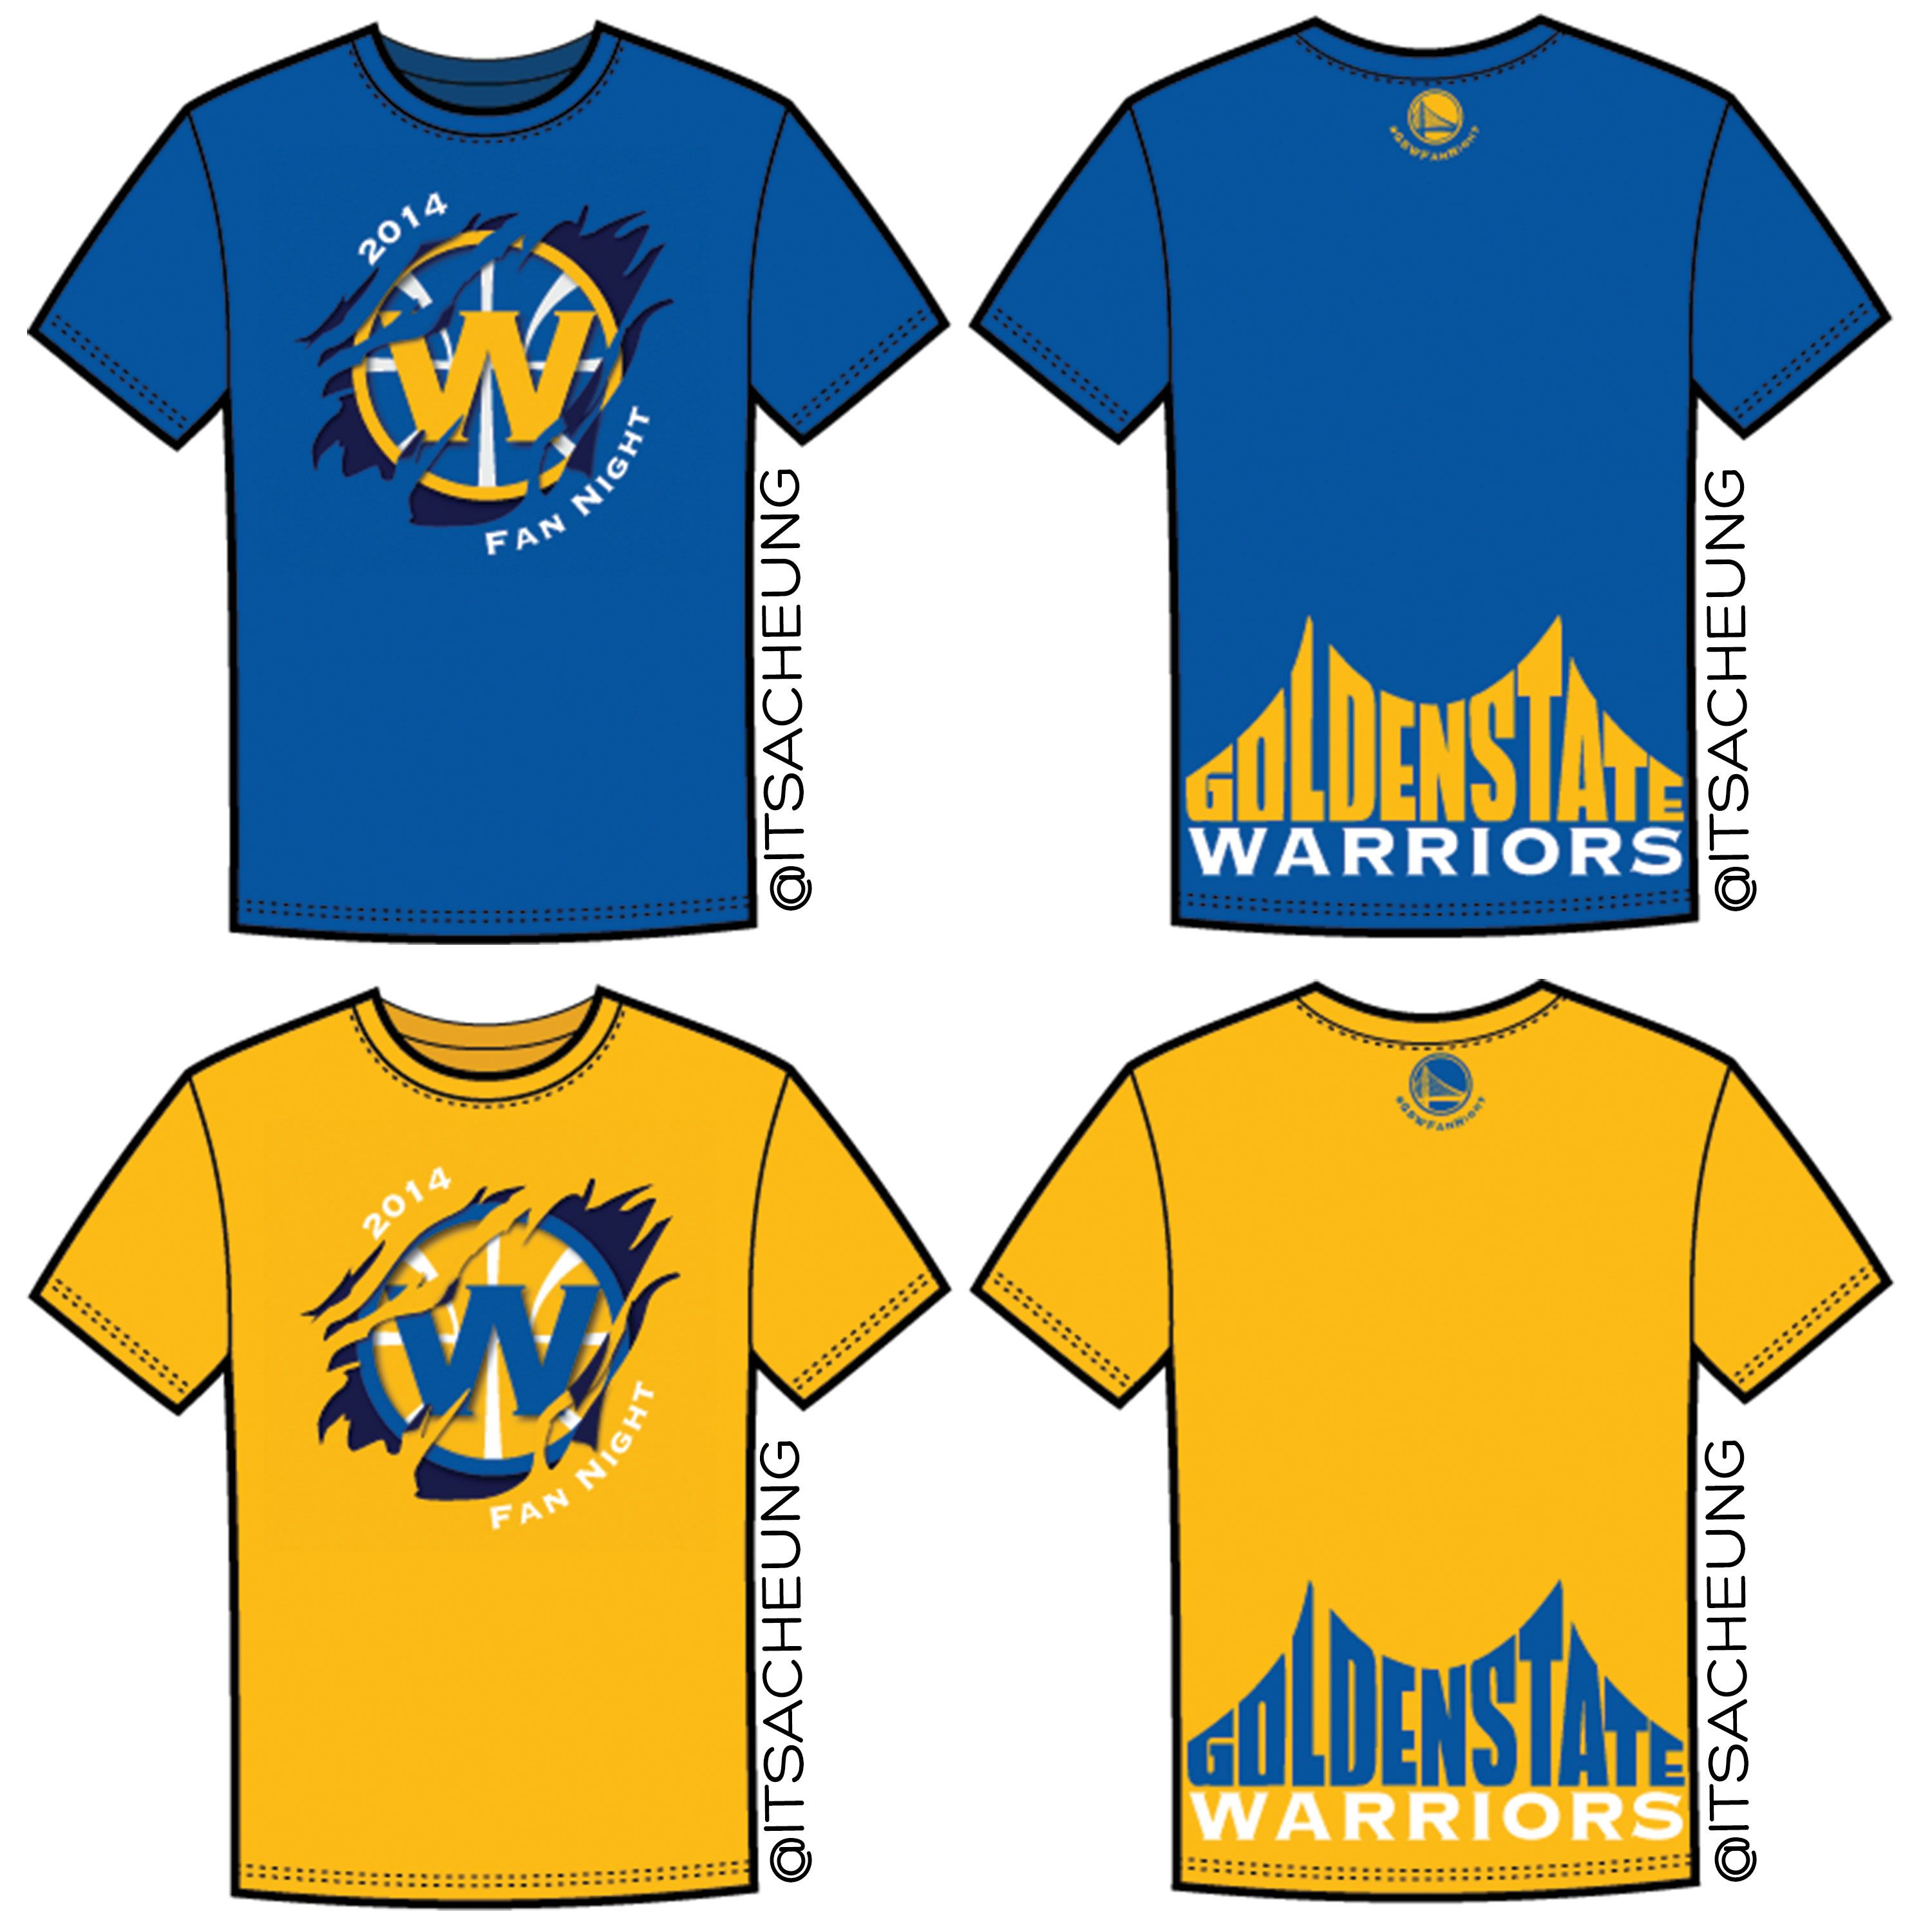 My #GSWFANNIGHT tshirt design made top 5 finalists, but not the winner :( I wish I had the money to create these and sell them!